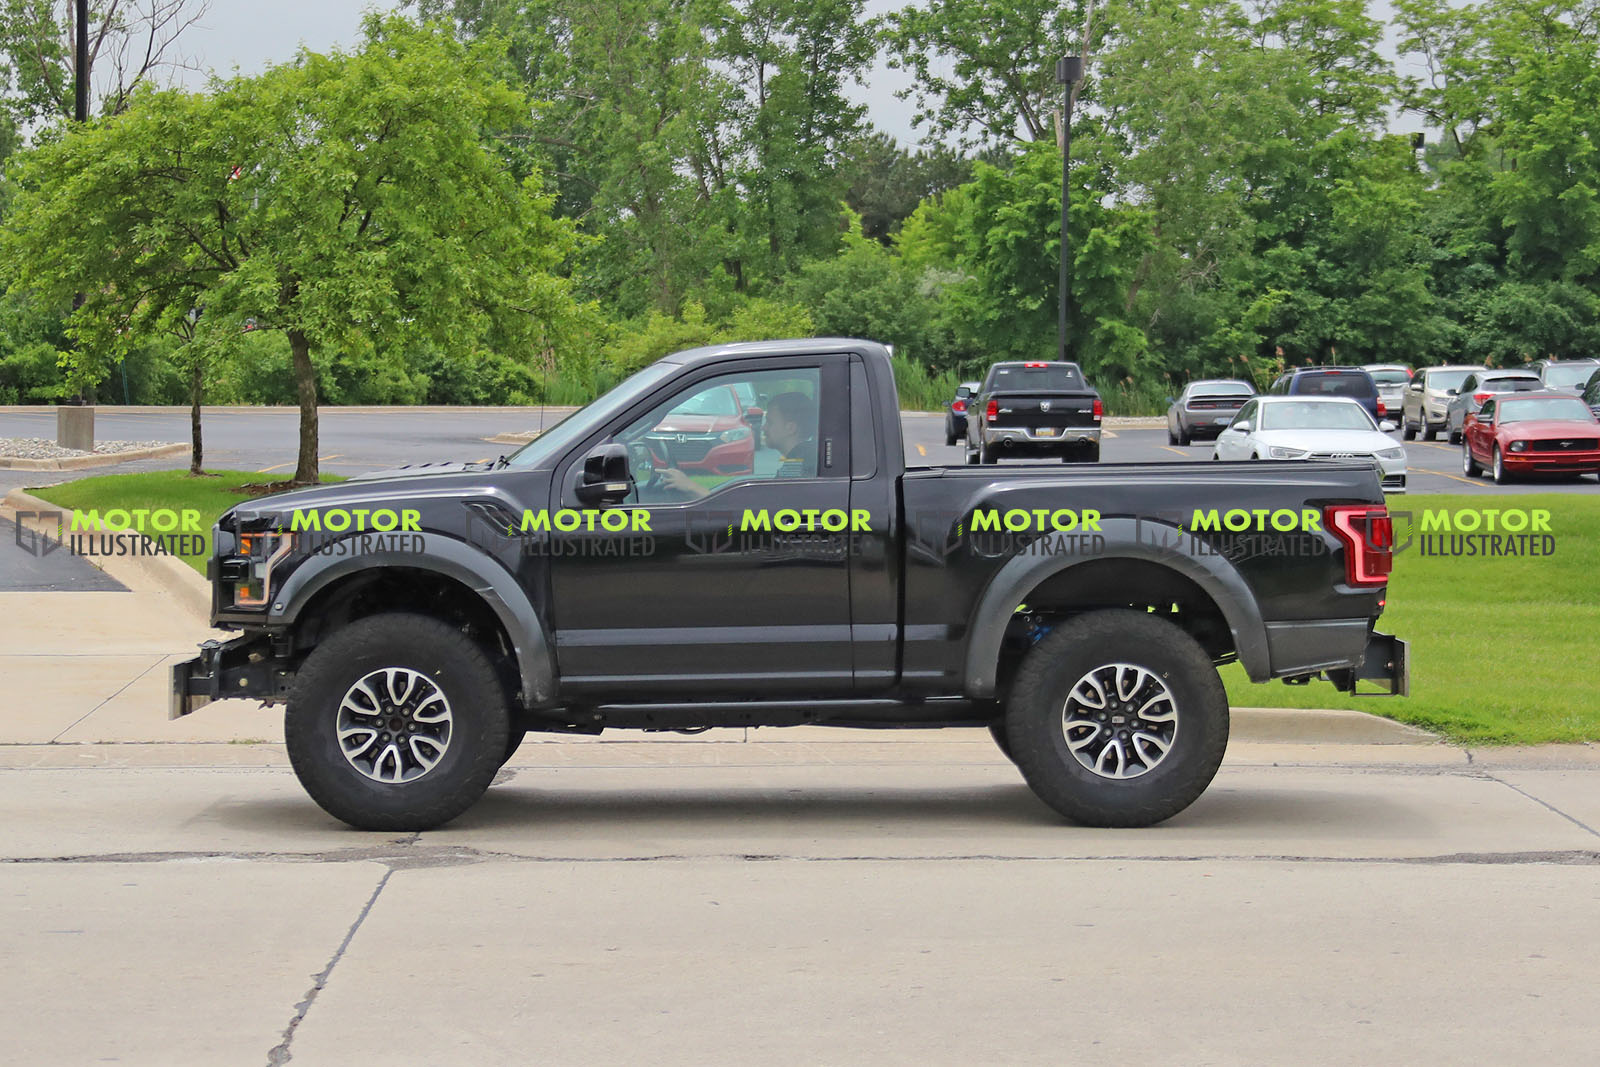 New Ford Bronco Mule Spotted Disguised As An F-150 Raptor ...